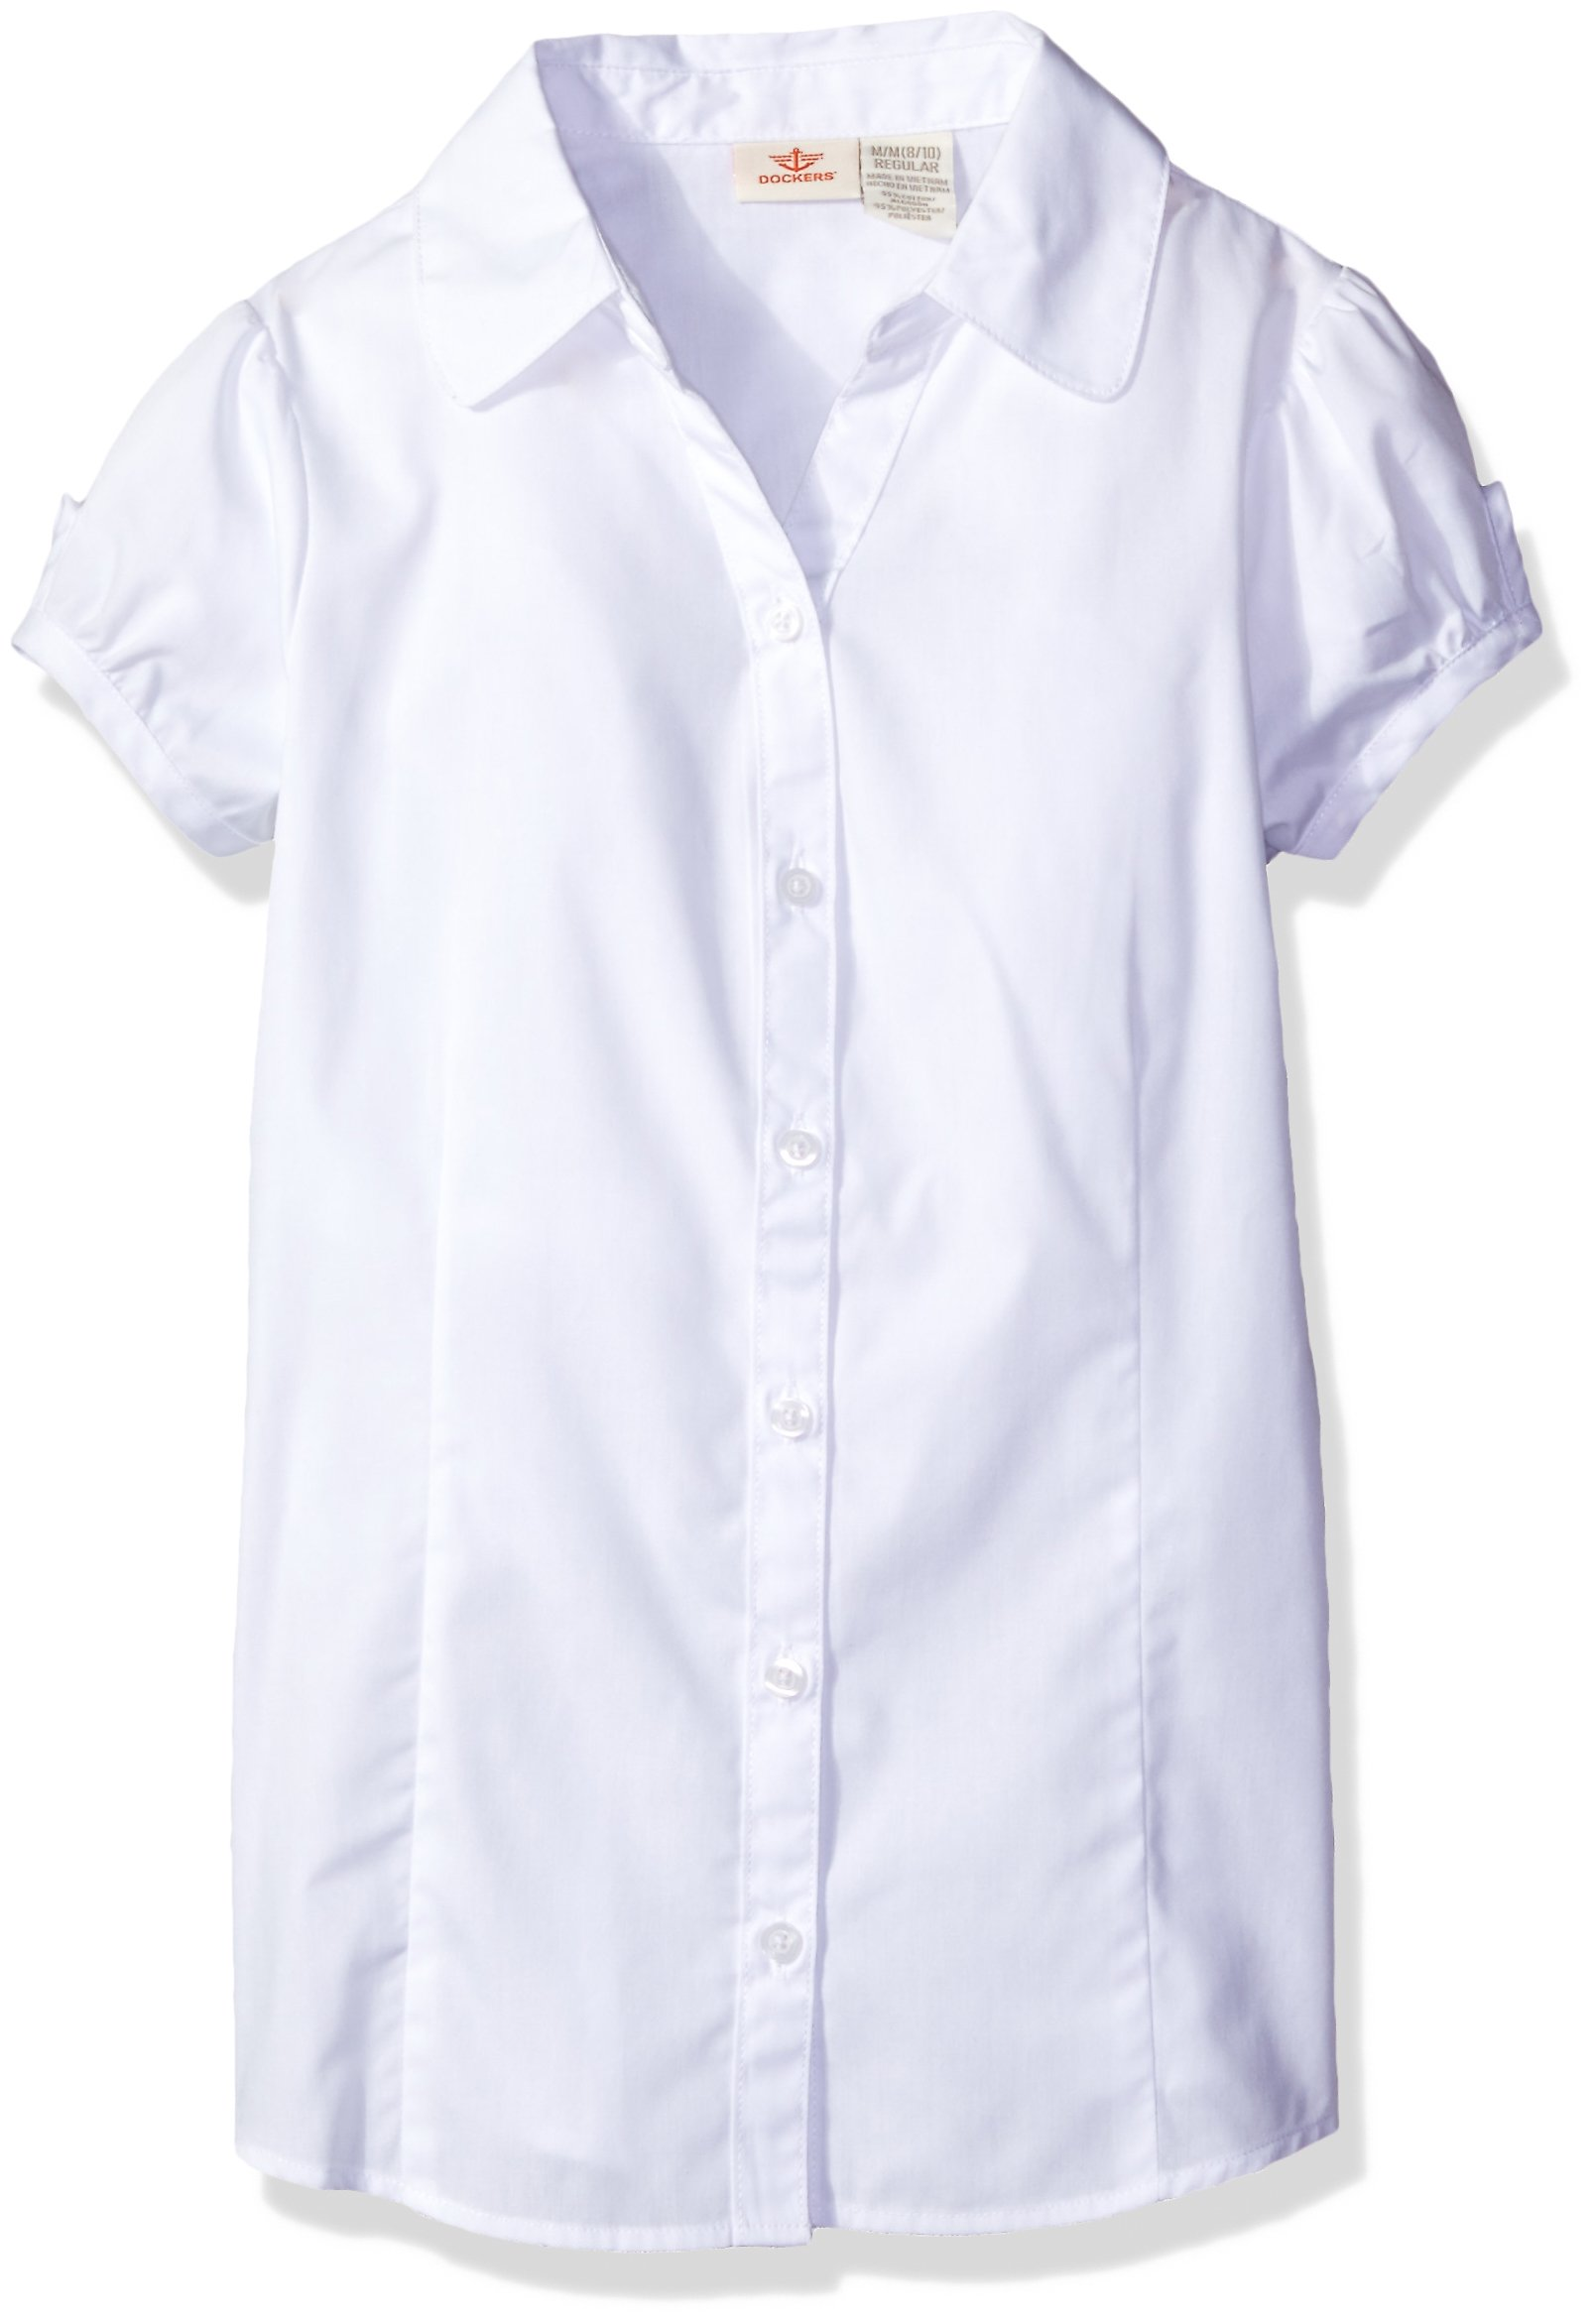 Dockers Big Girls' Uniform Y-Neck Blouse, White, Large/12/14